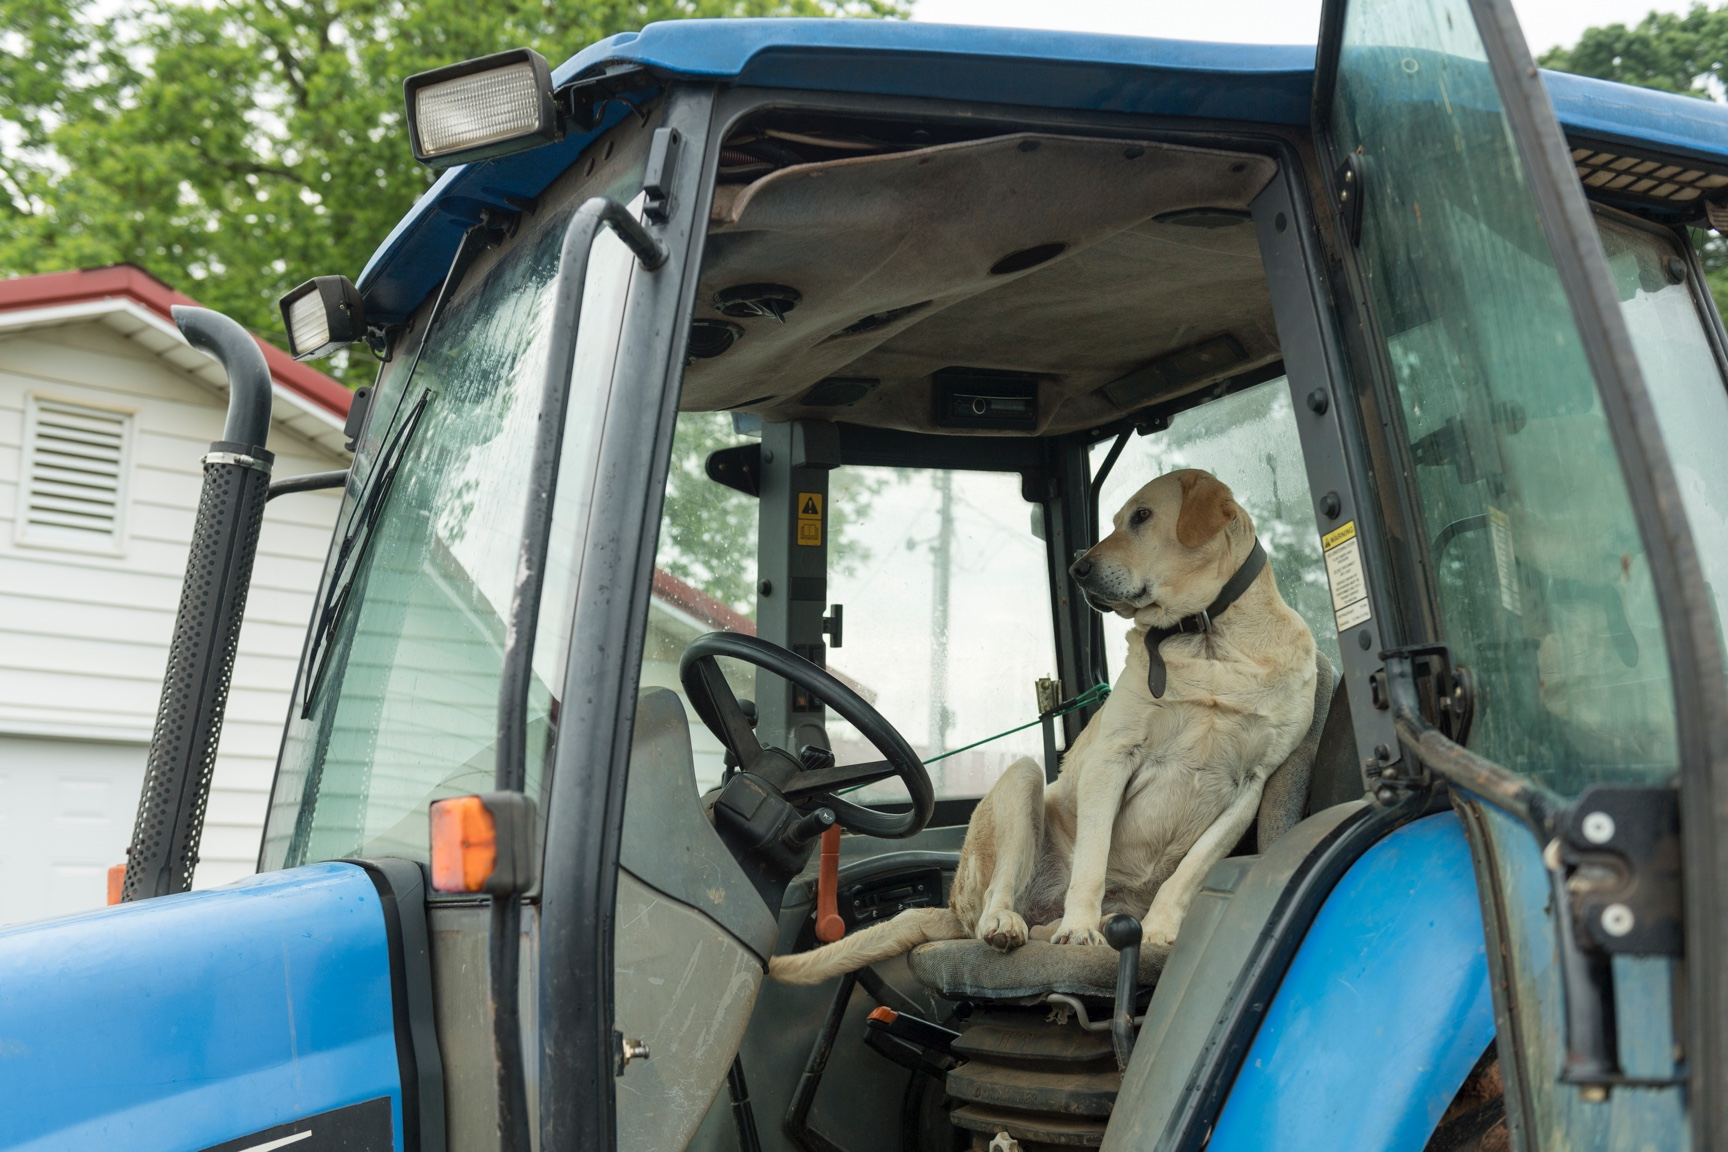 A yellow lab sits in the driver's seat in a blue farm tractor.